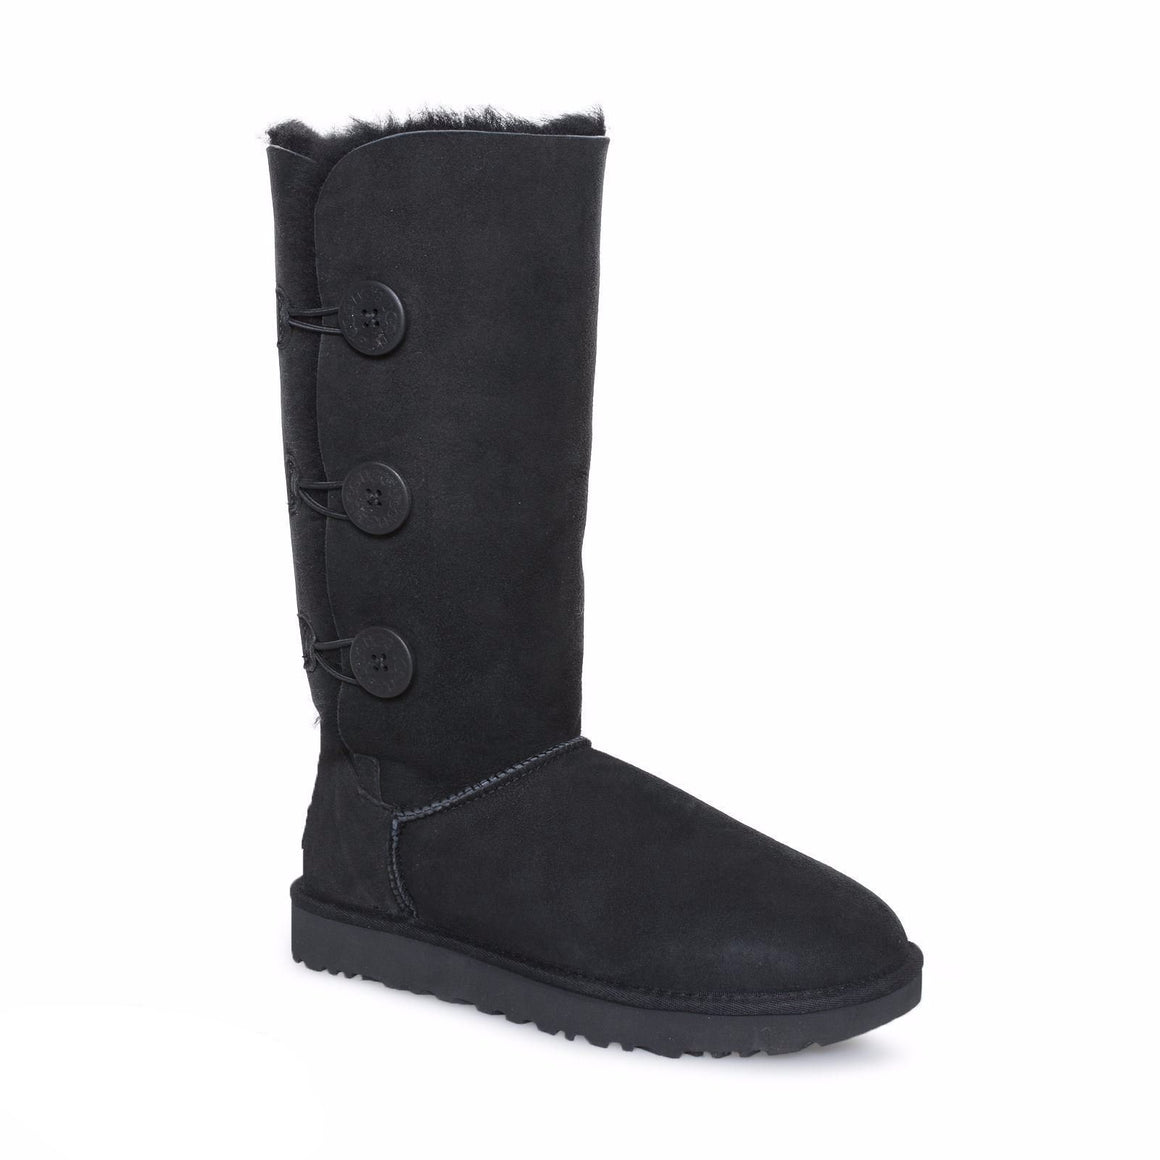 UGG Bailey Button Triplet II Black Boots